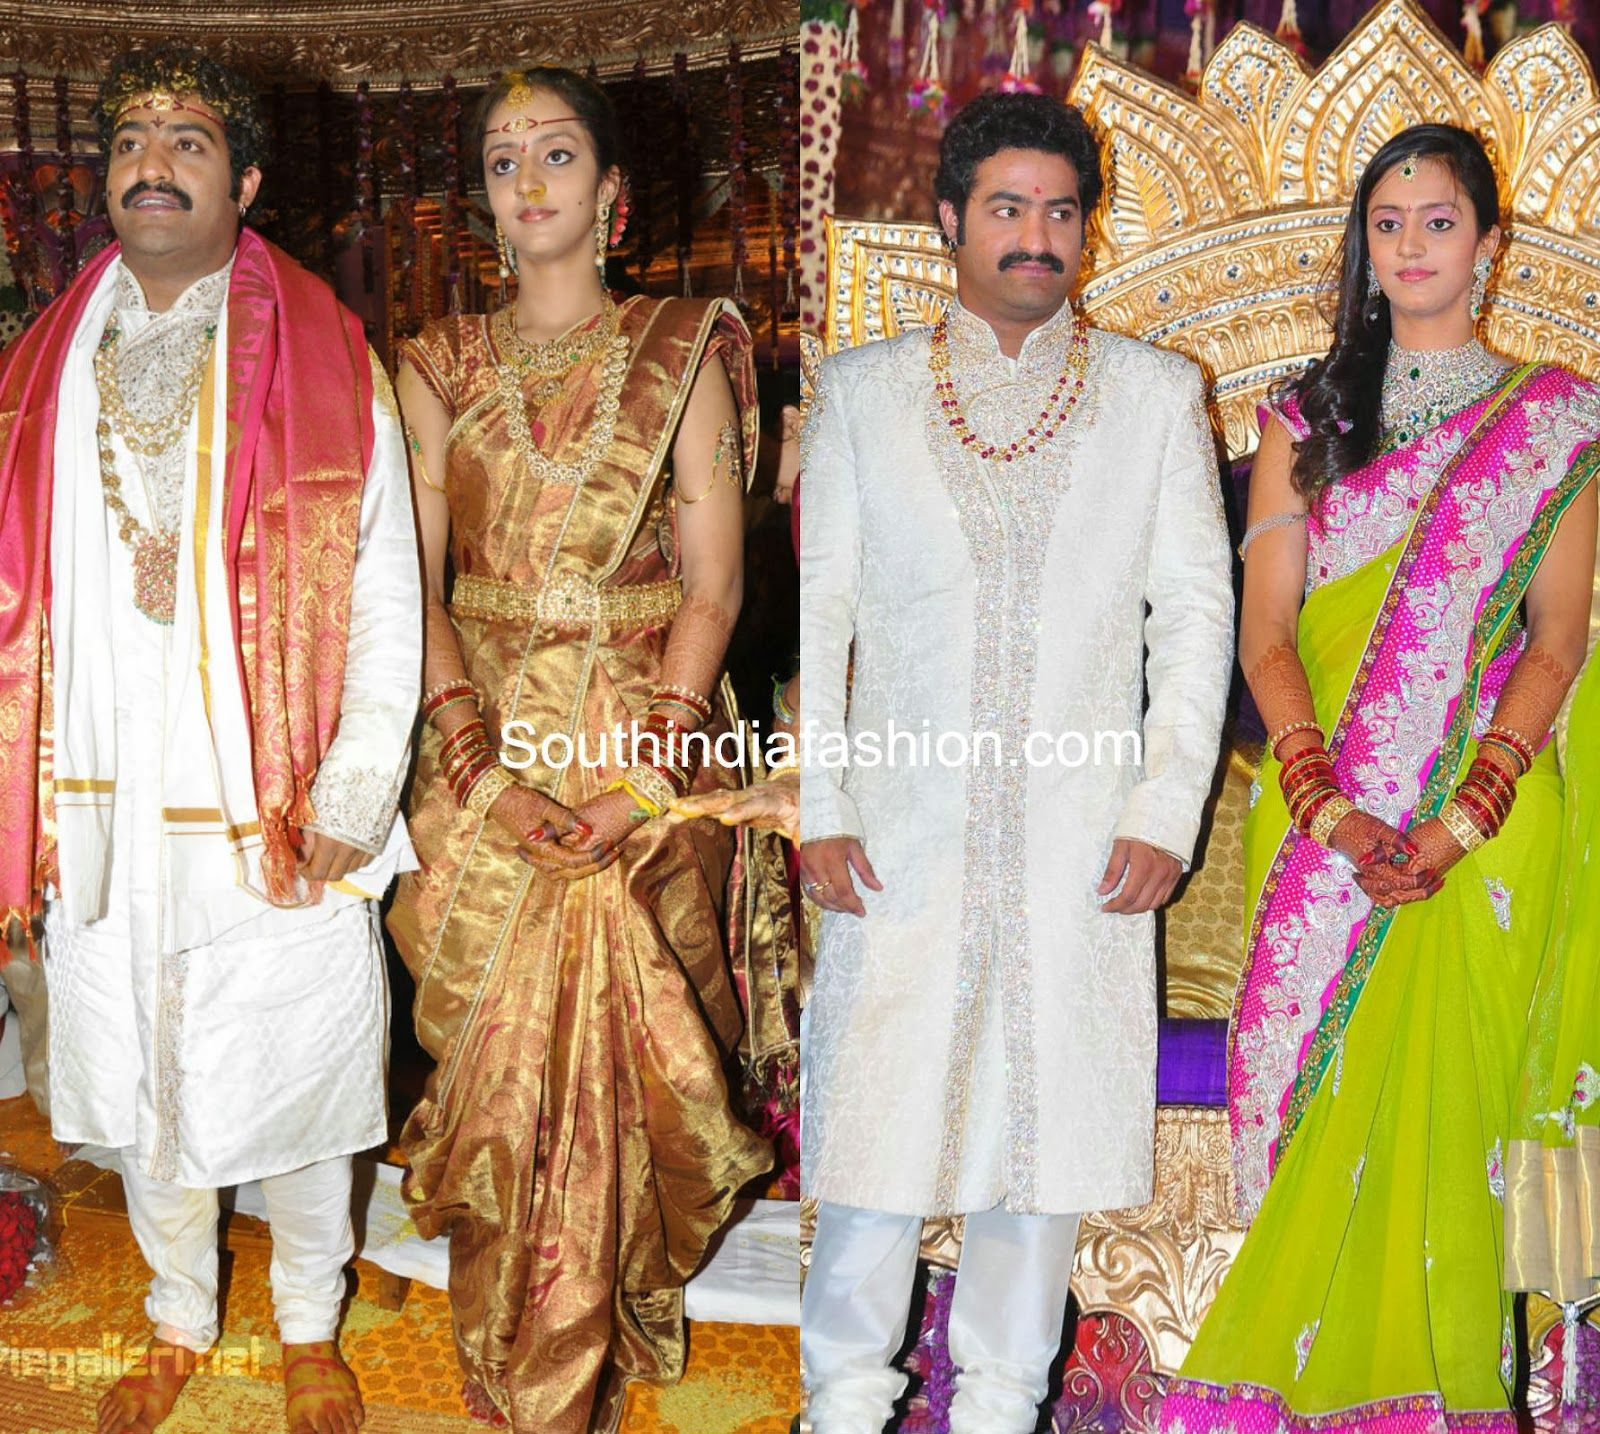 Jr Ntr Wedding Images With Images Celebrity Weddings India Fashion Indian Women